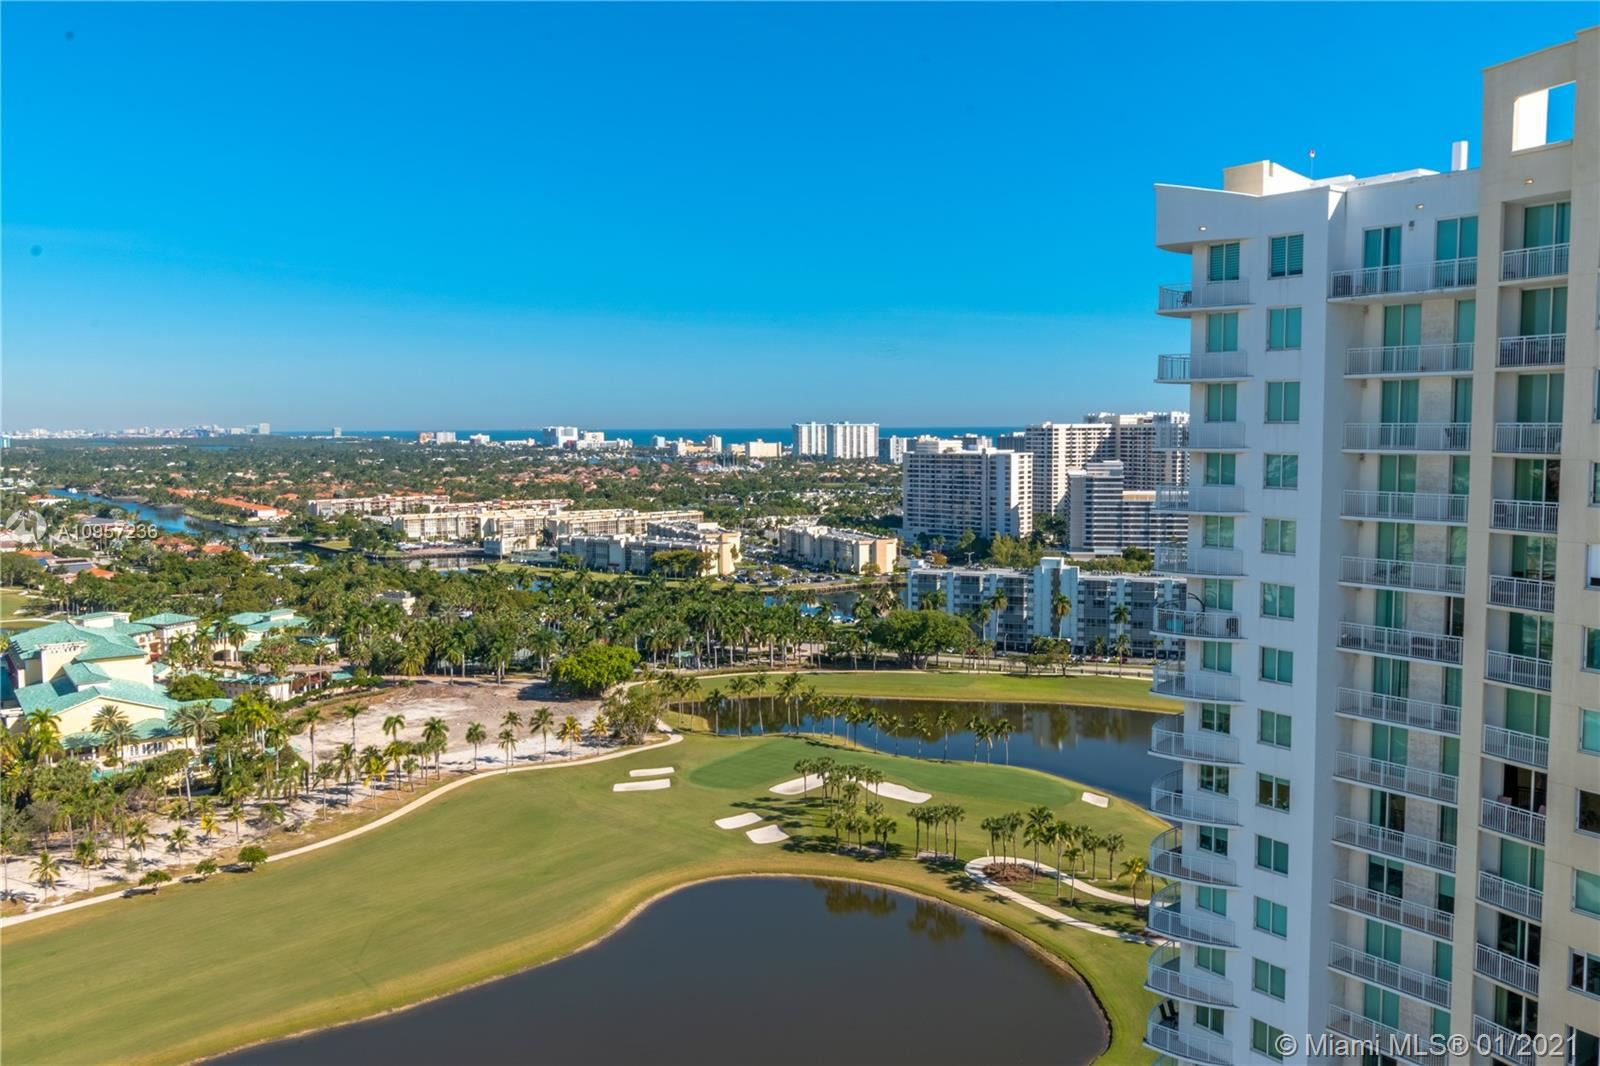 1745 E Hallandale Beach Blvd #2406W, Hallandale Beach, FL 33009 - #: A10957236